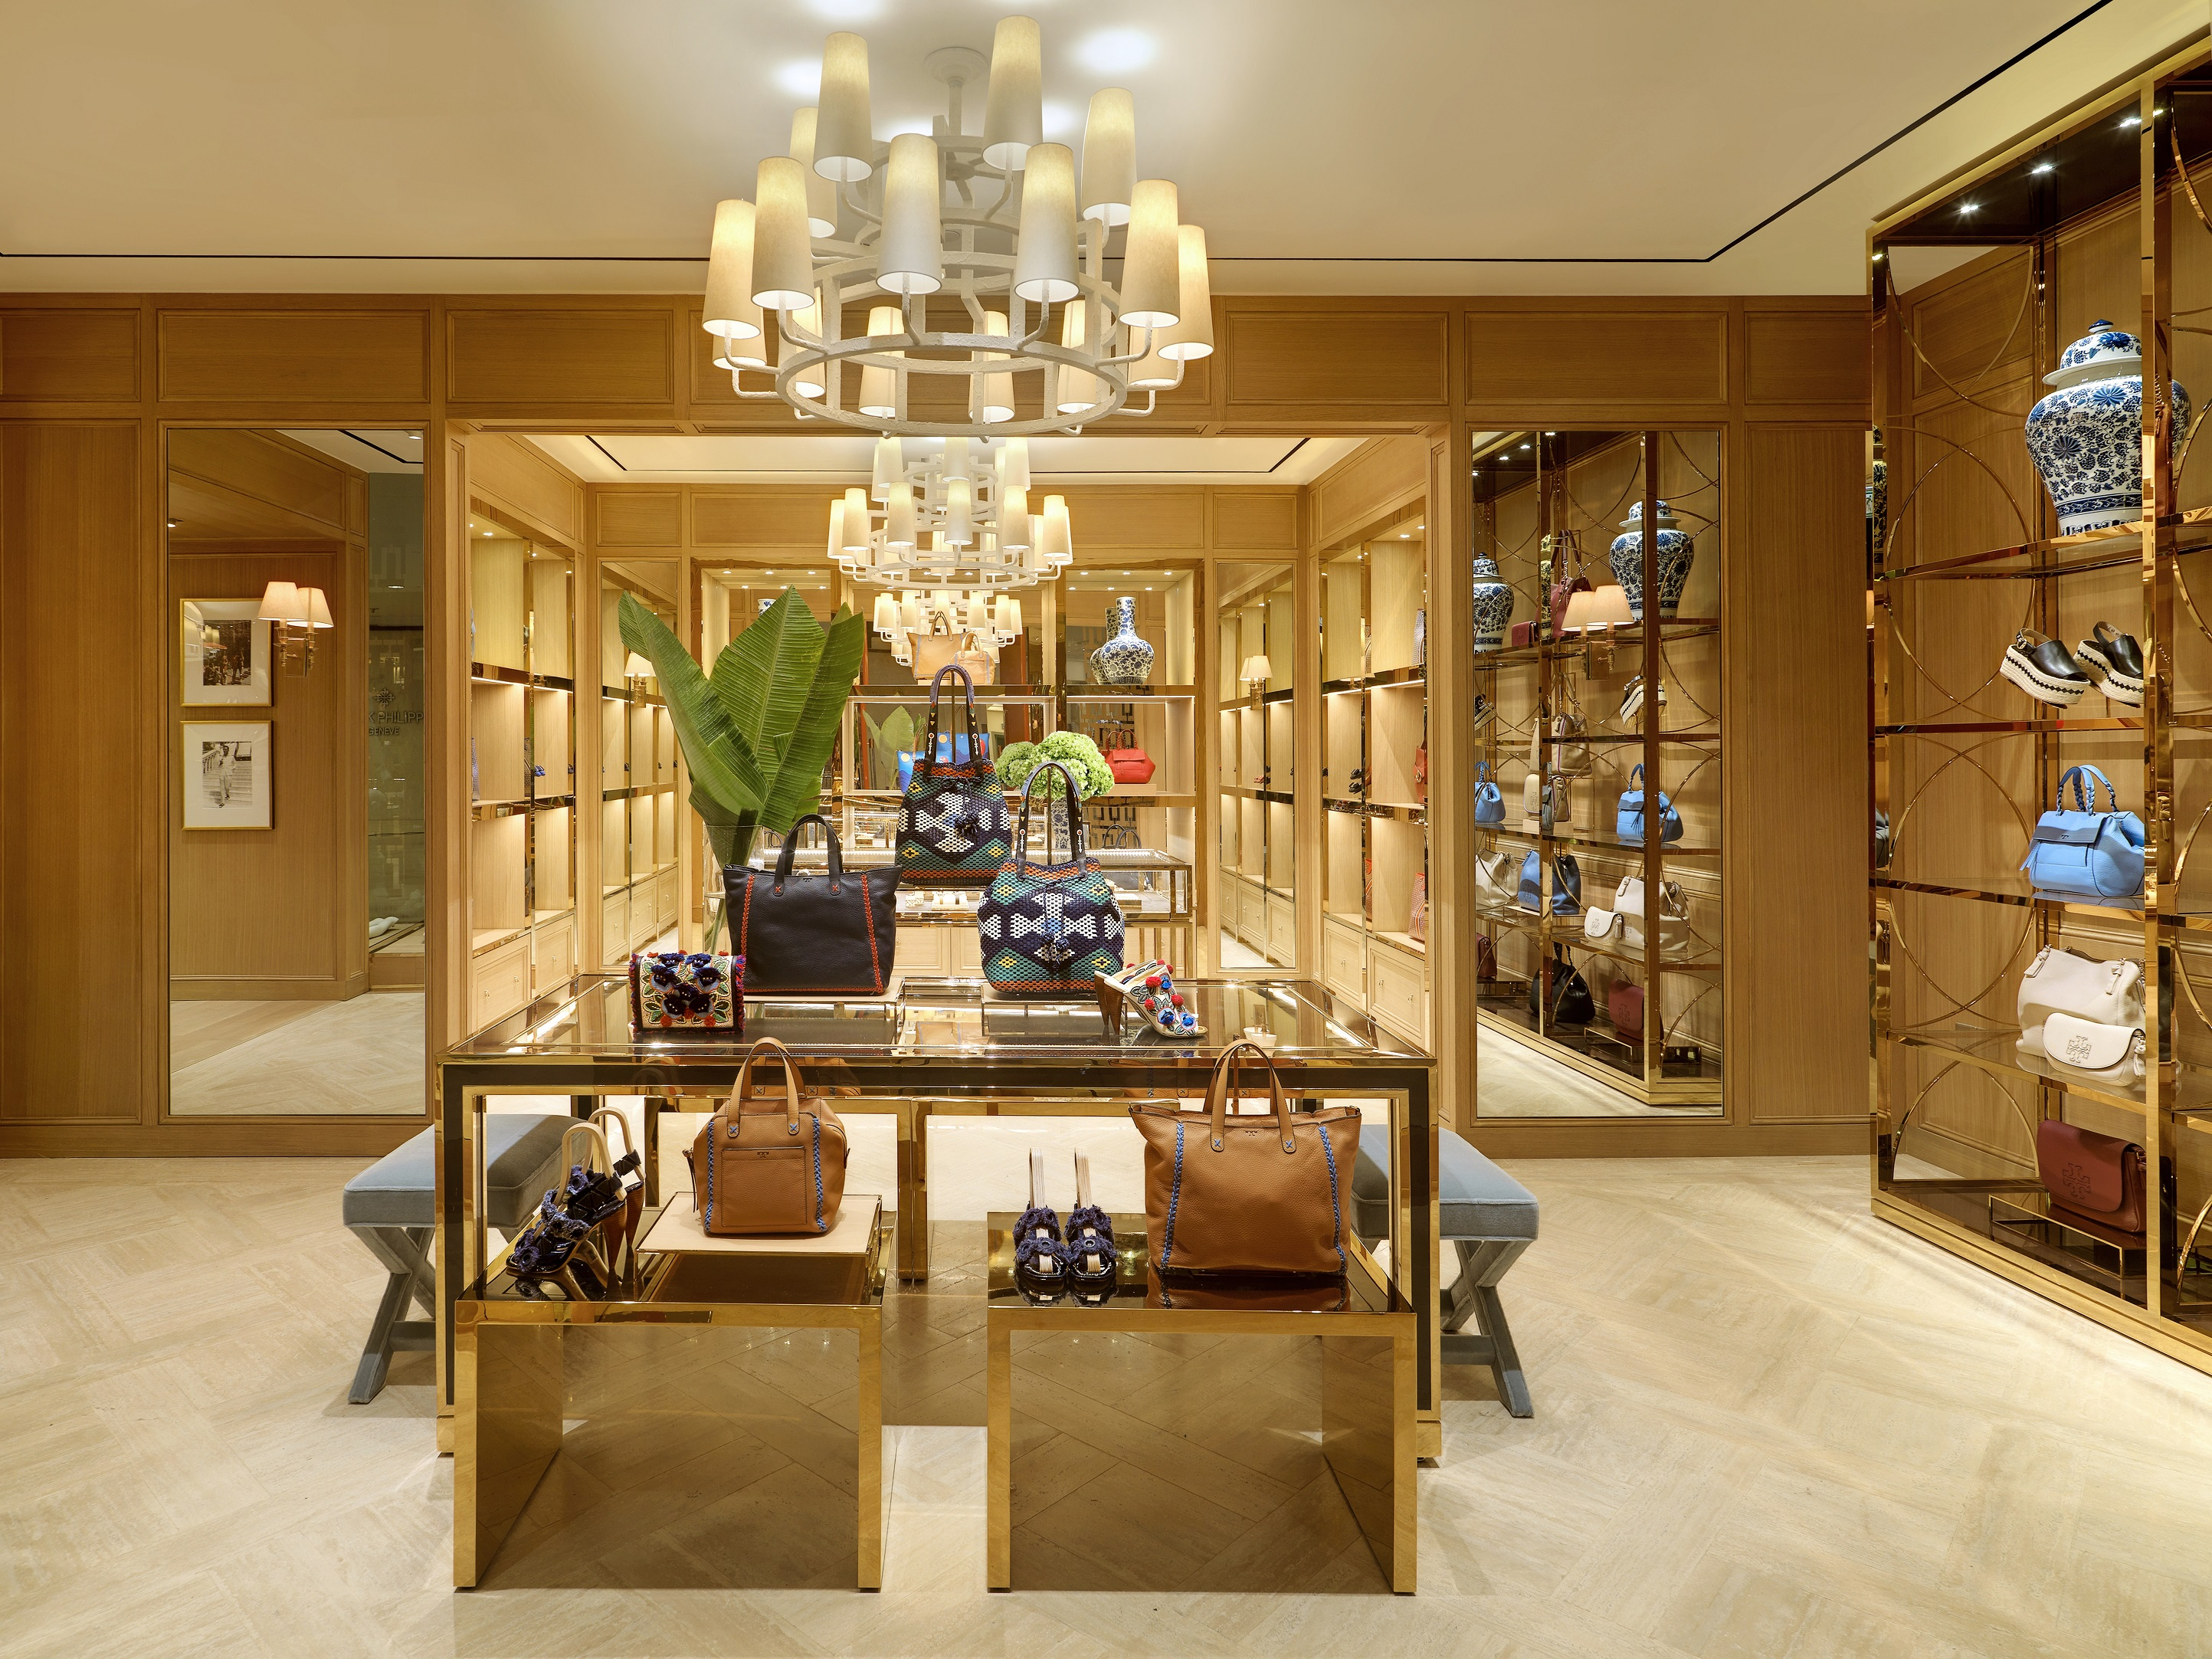 Tory Burch Opens In Mall Of Qatar Future Of Retail Business In Middle East